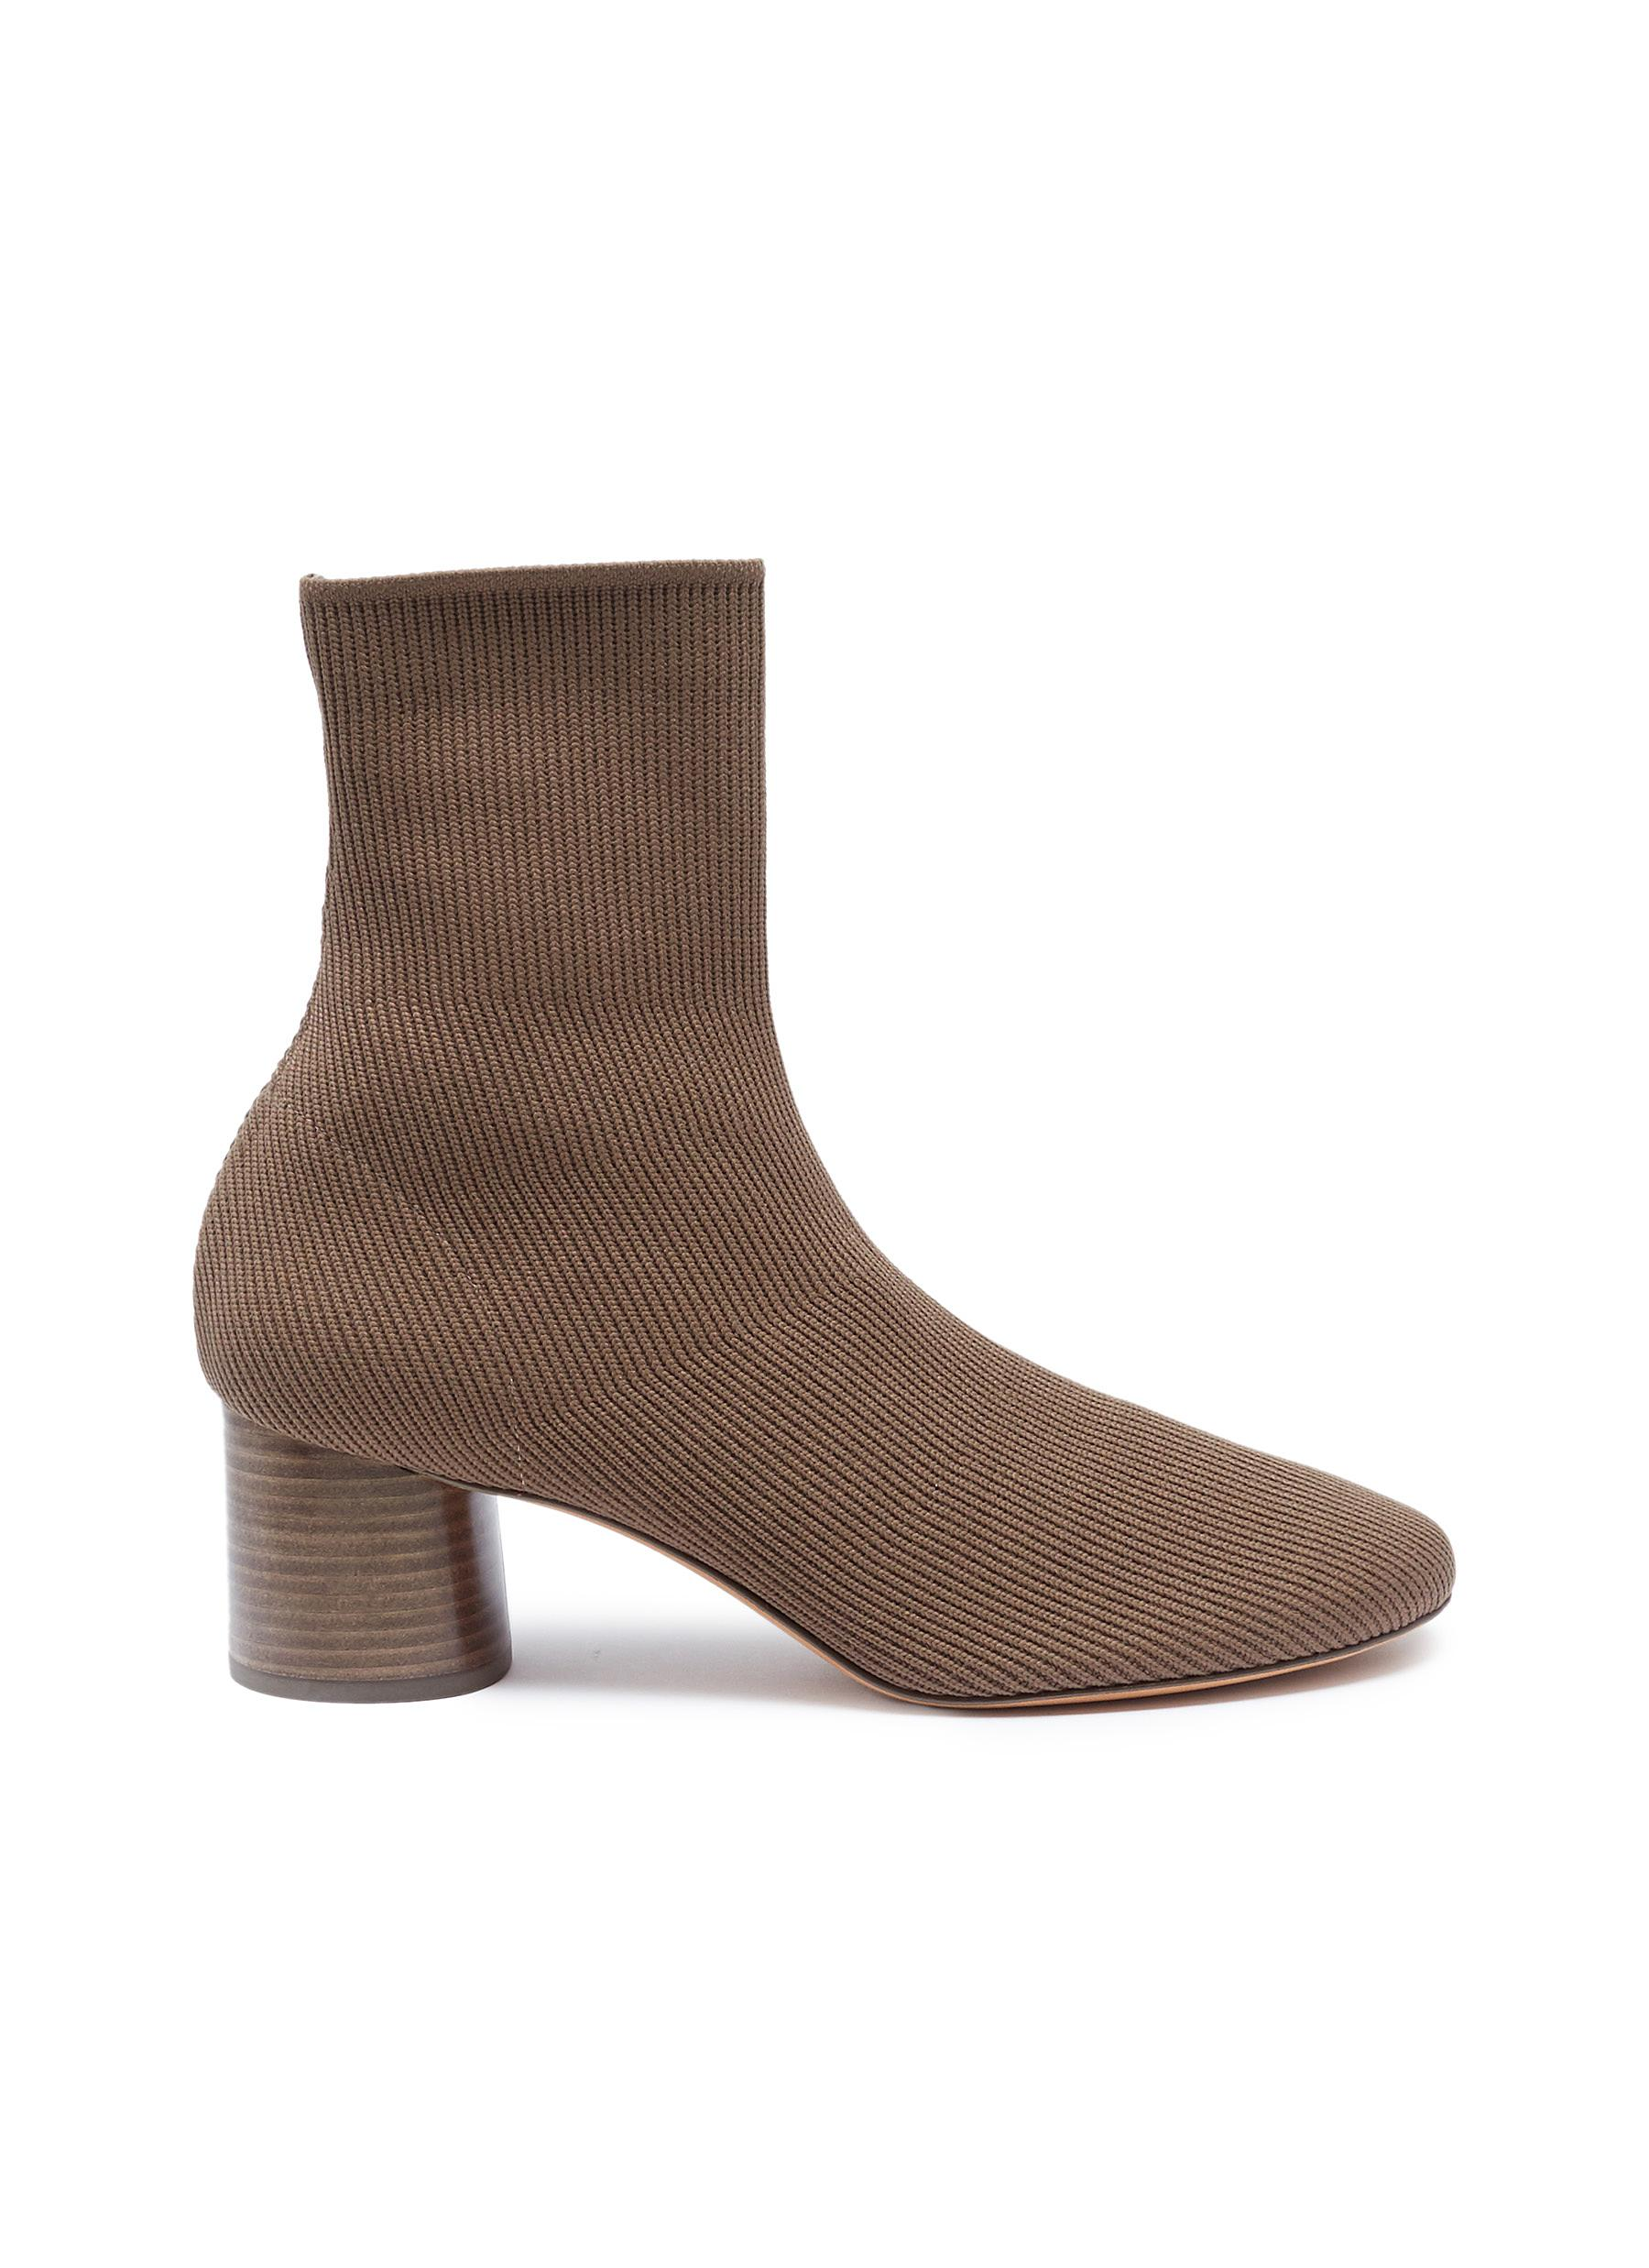 Tasha cylindrical heel sock knit ankle boots by Vince